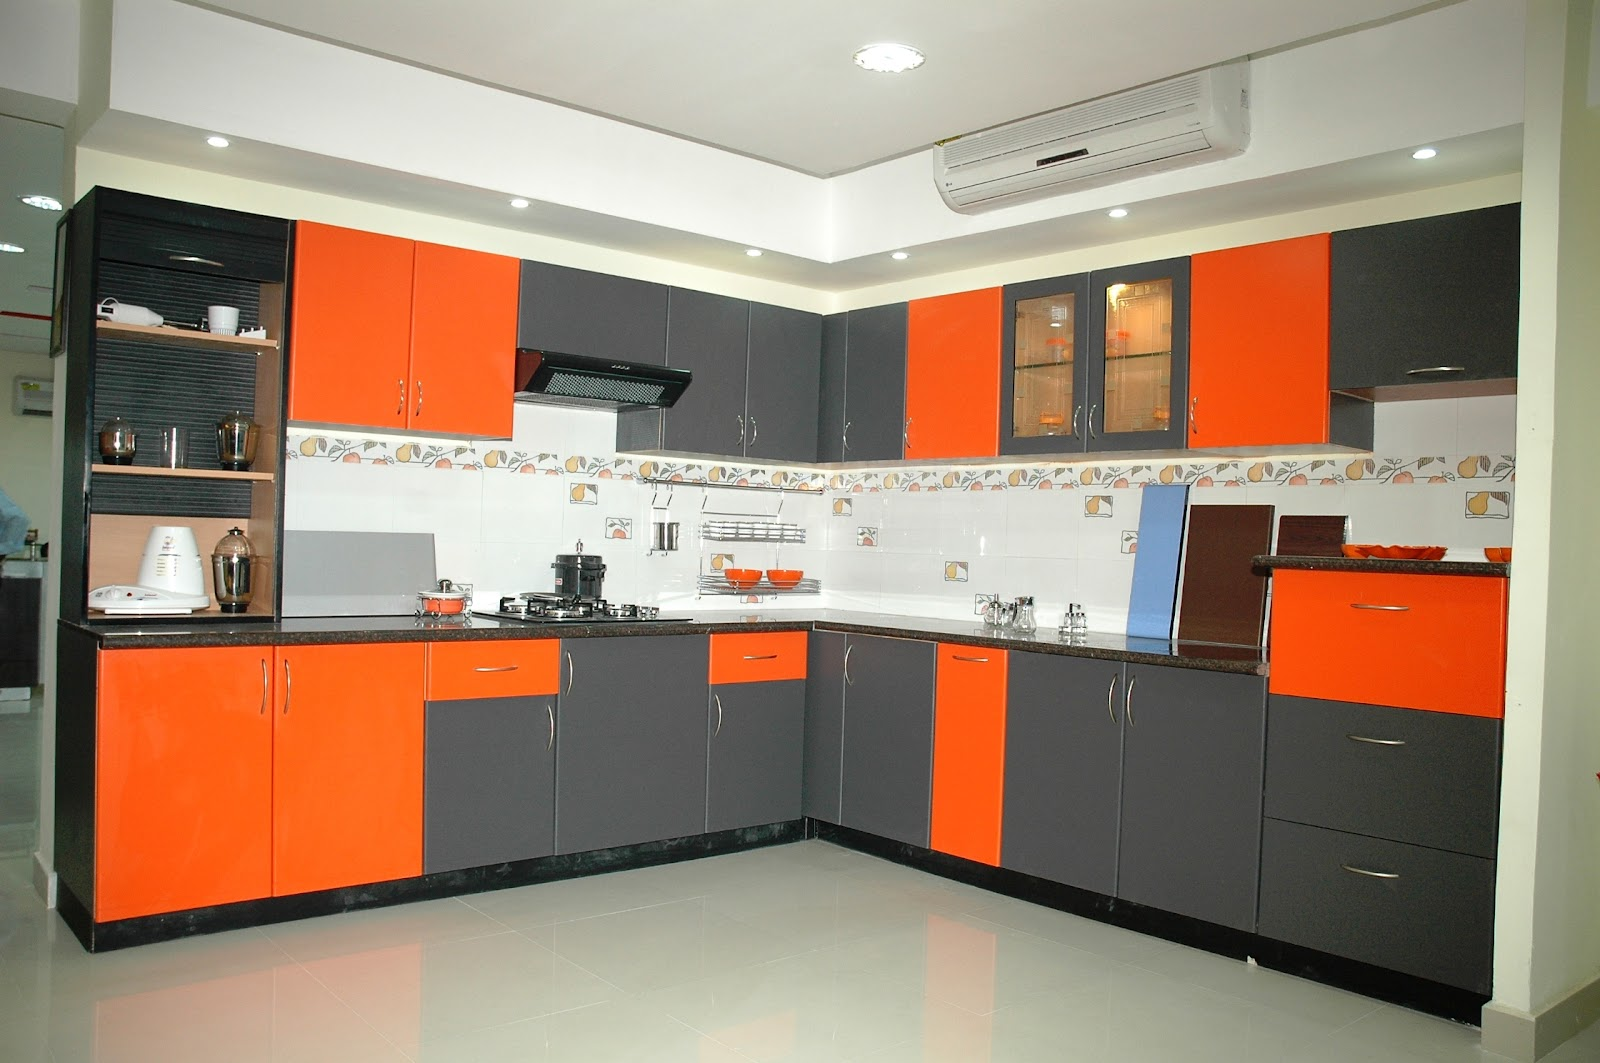 Chennai kitchen modular interiors chennai kitchen cabinets designs price Modular kitchen design colors